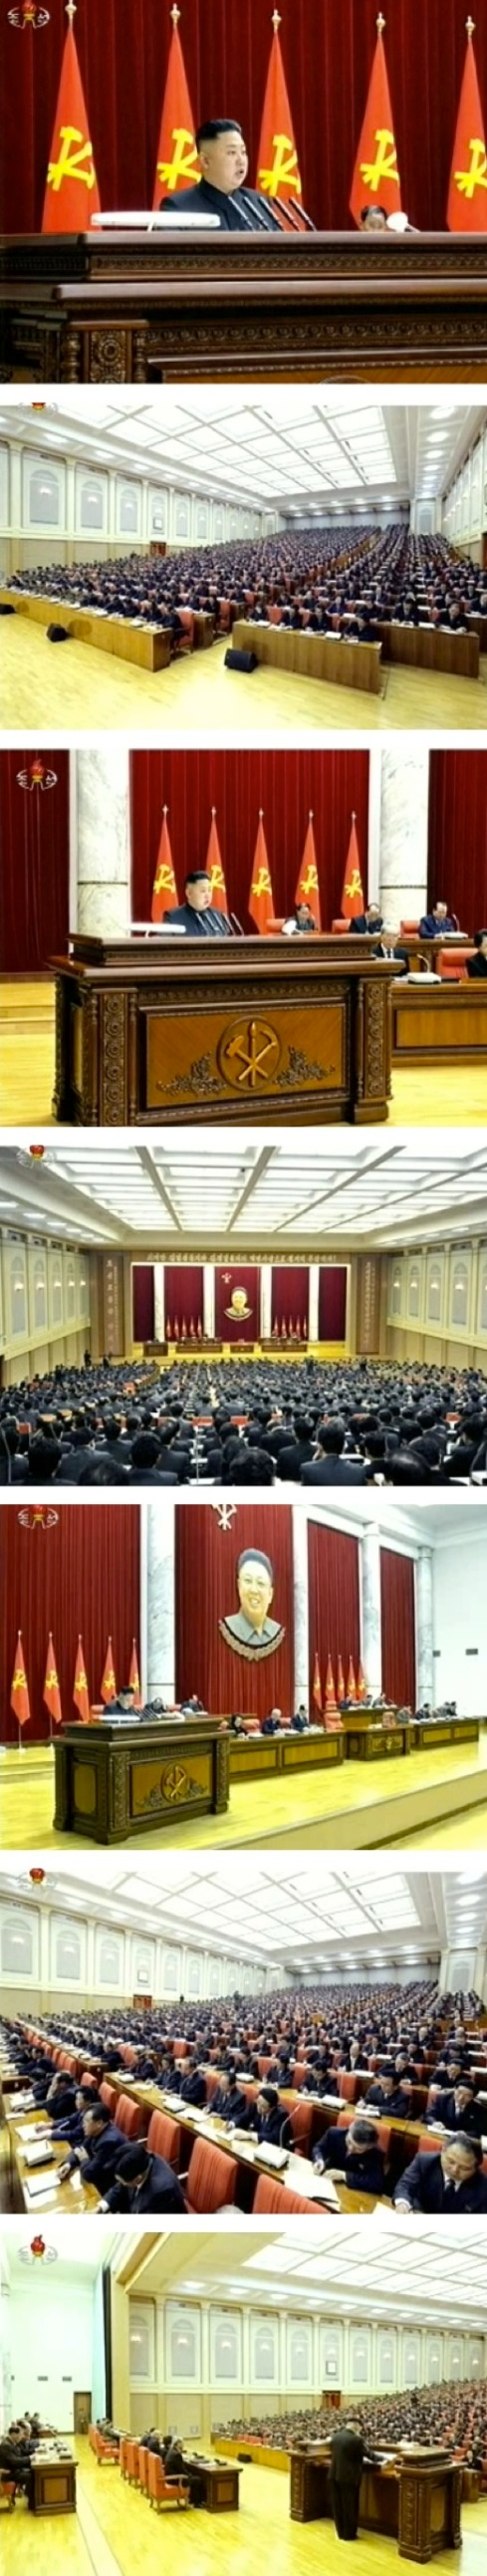 Kim Jong Un addresses members and alternates of the KWP Central Committee in Pyongyang on 31 March 2013 (Photos: KCTV screengrabs)